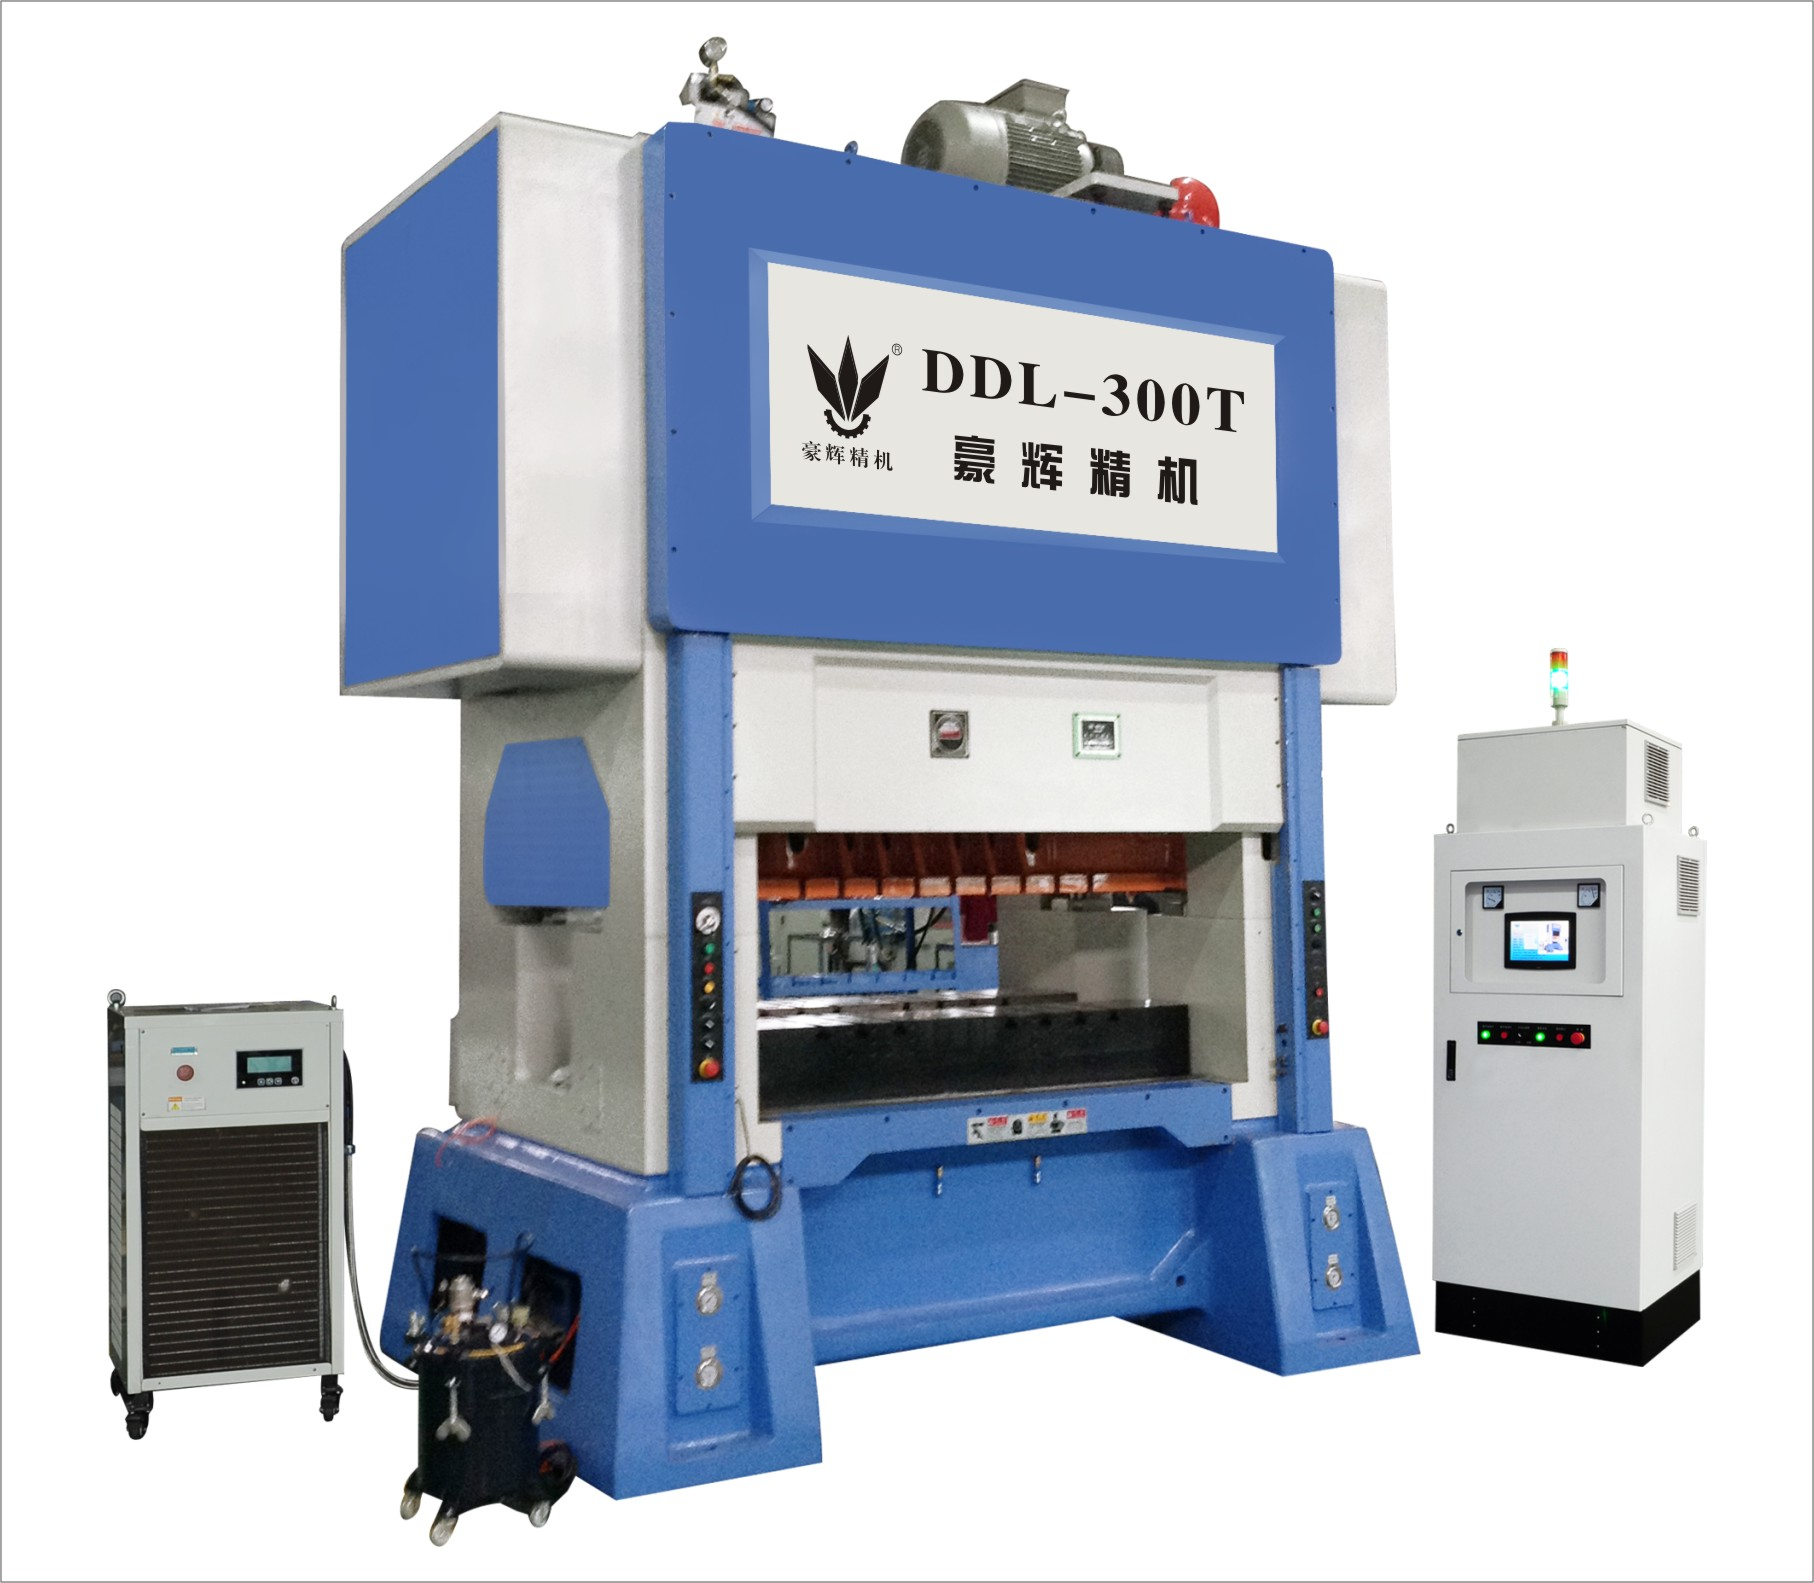 DDL-300T HIGH SPEED STAMPING LINE/ MOTOR CORE STAMPING